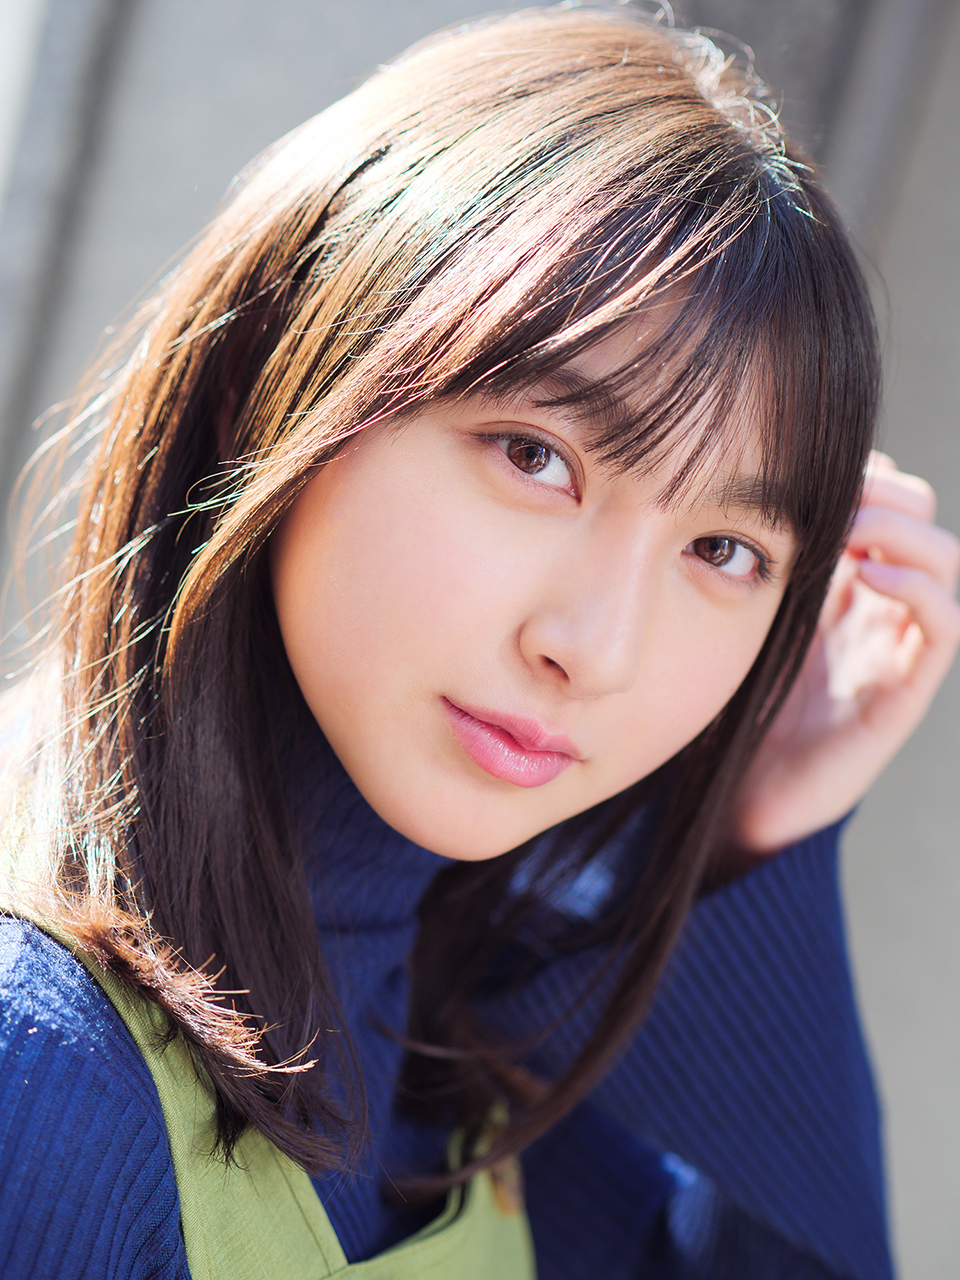 PICK UP ACTRESS 桜田ひより | HUSTLE PRESS OFFICIAL WEB SITE